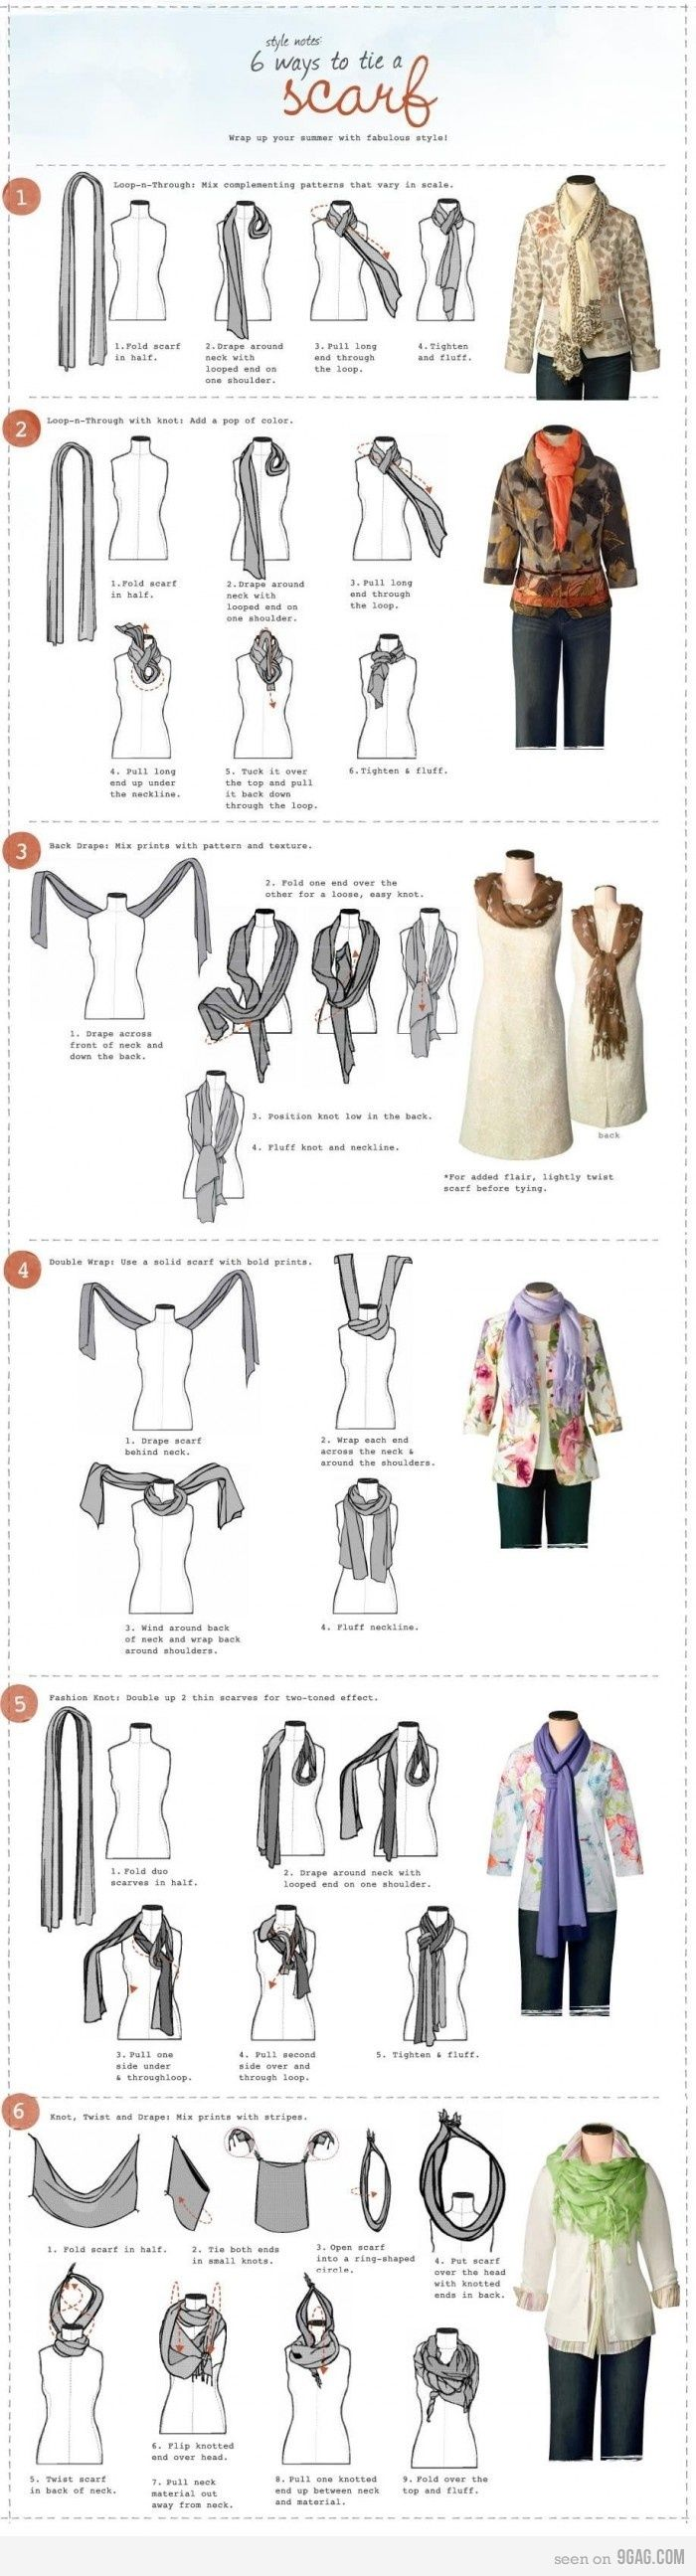 6 ways to tie a scarf styles i adore